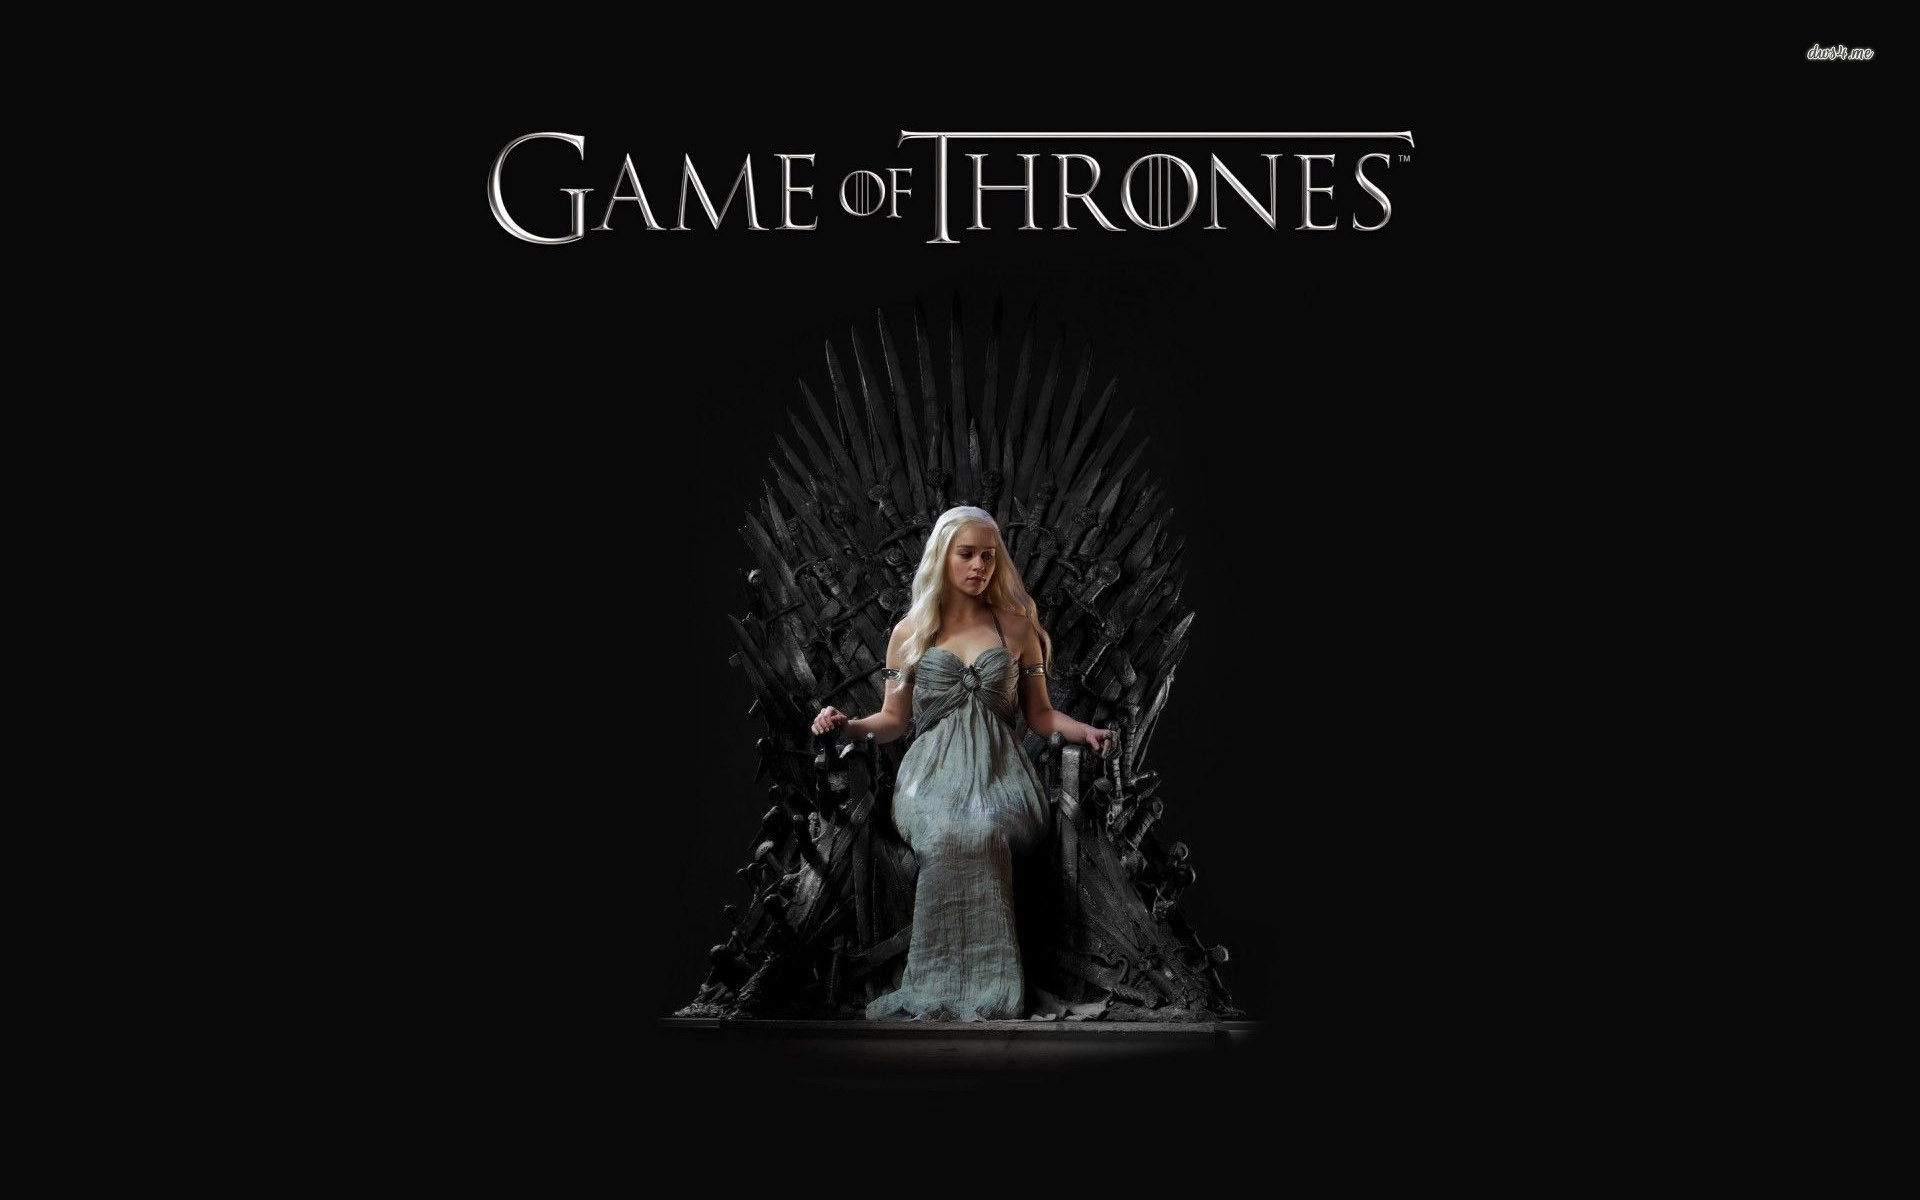 Game Of Thrones Hd Wallpaper Download Free Beautiful High